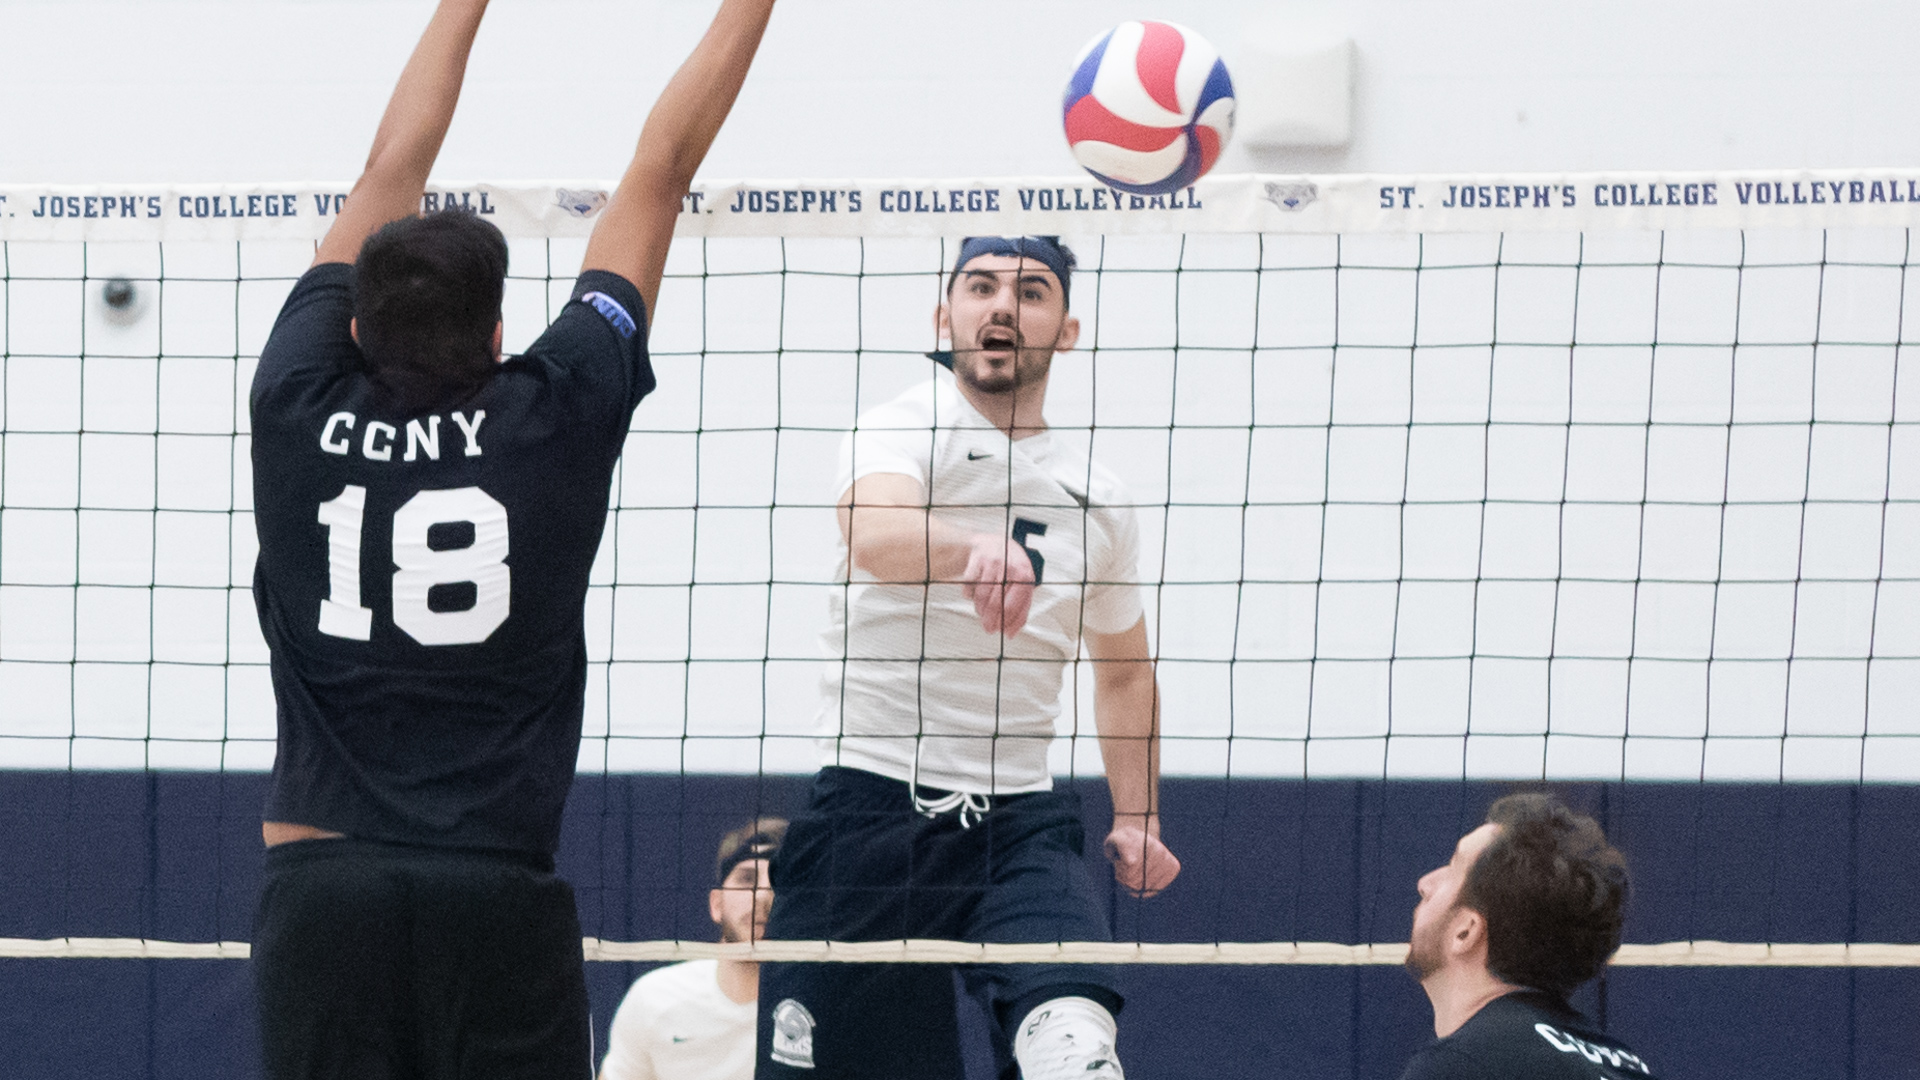 Men's Volleyball Tripped Up by CCNY